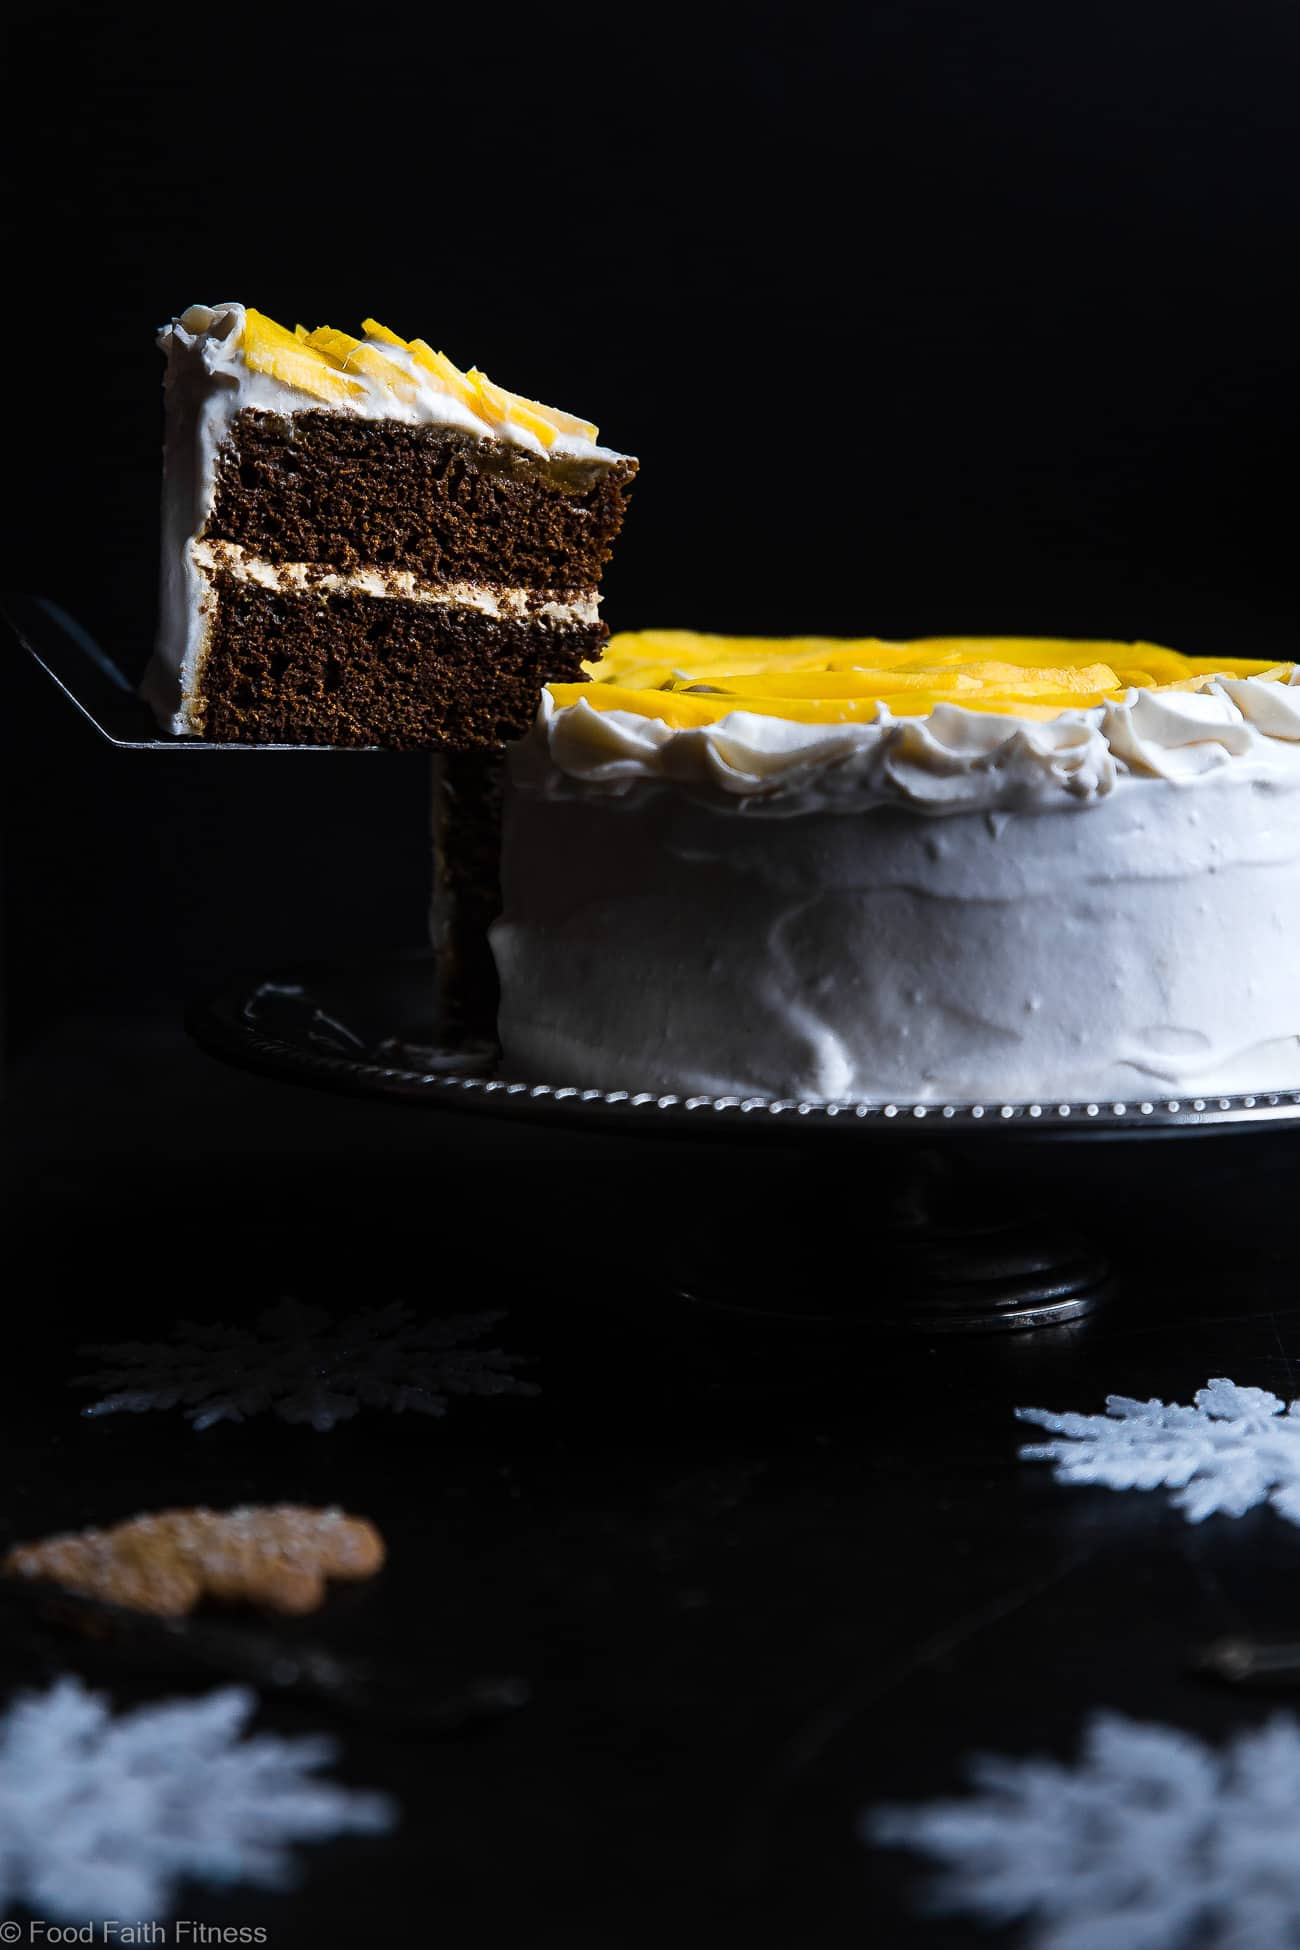 Gluten Free Mango Gingerbread Cake with Coconut Cream -This spicy-sweet, show stopping gluten free gingerbread cake is studded with juicy, fresh mangoes to create a healthy, paleo-friendly, festive dessert for the Holidays! | Foodfaithfitness.com | @FoodFaithFit